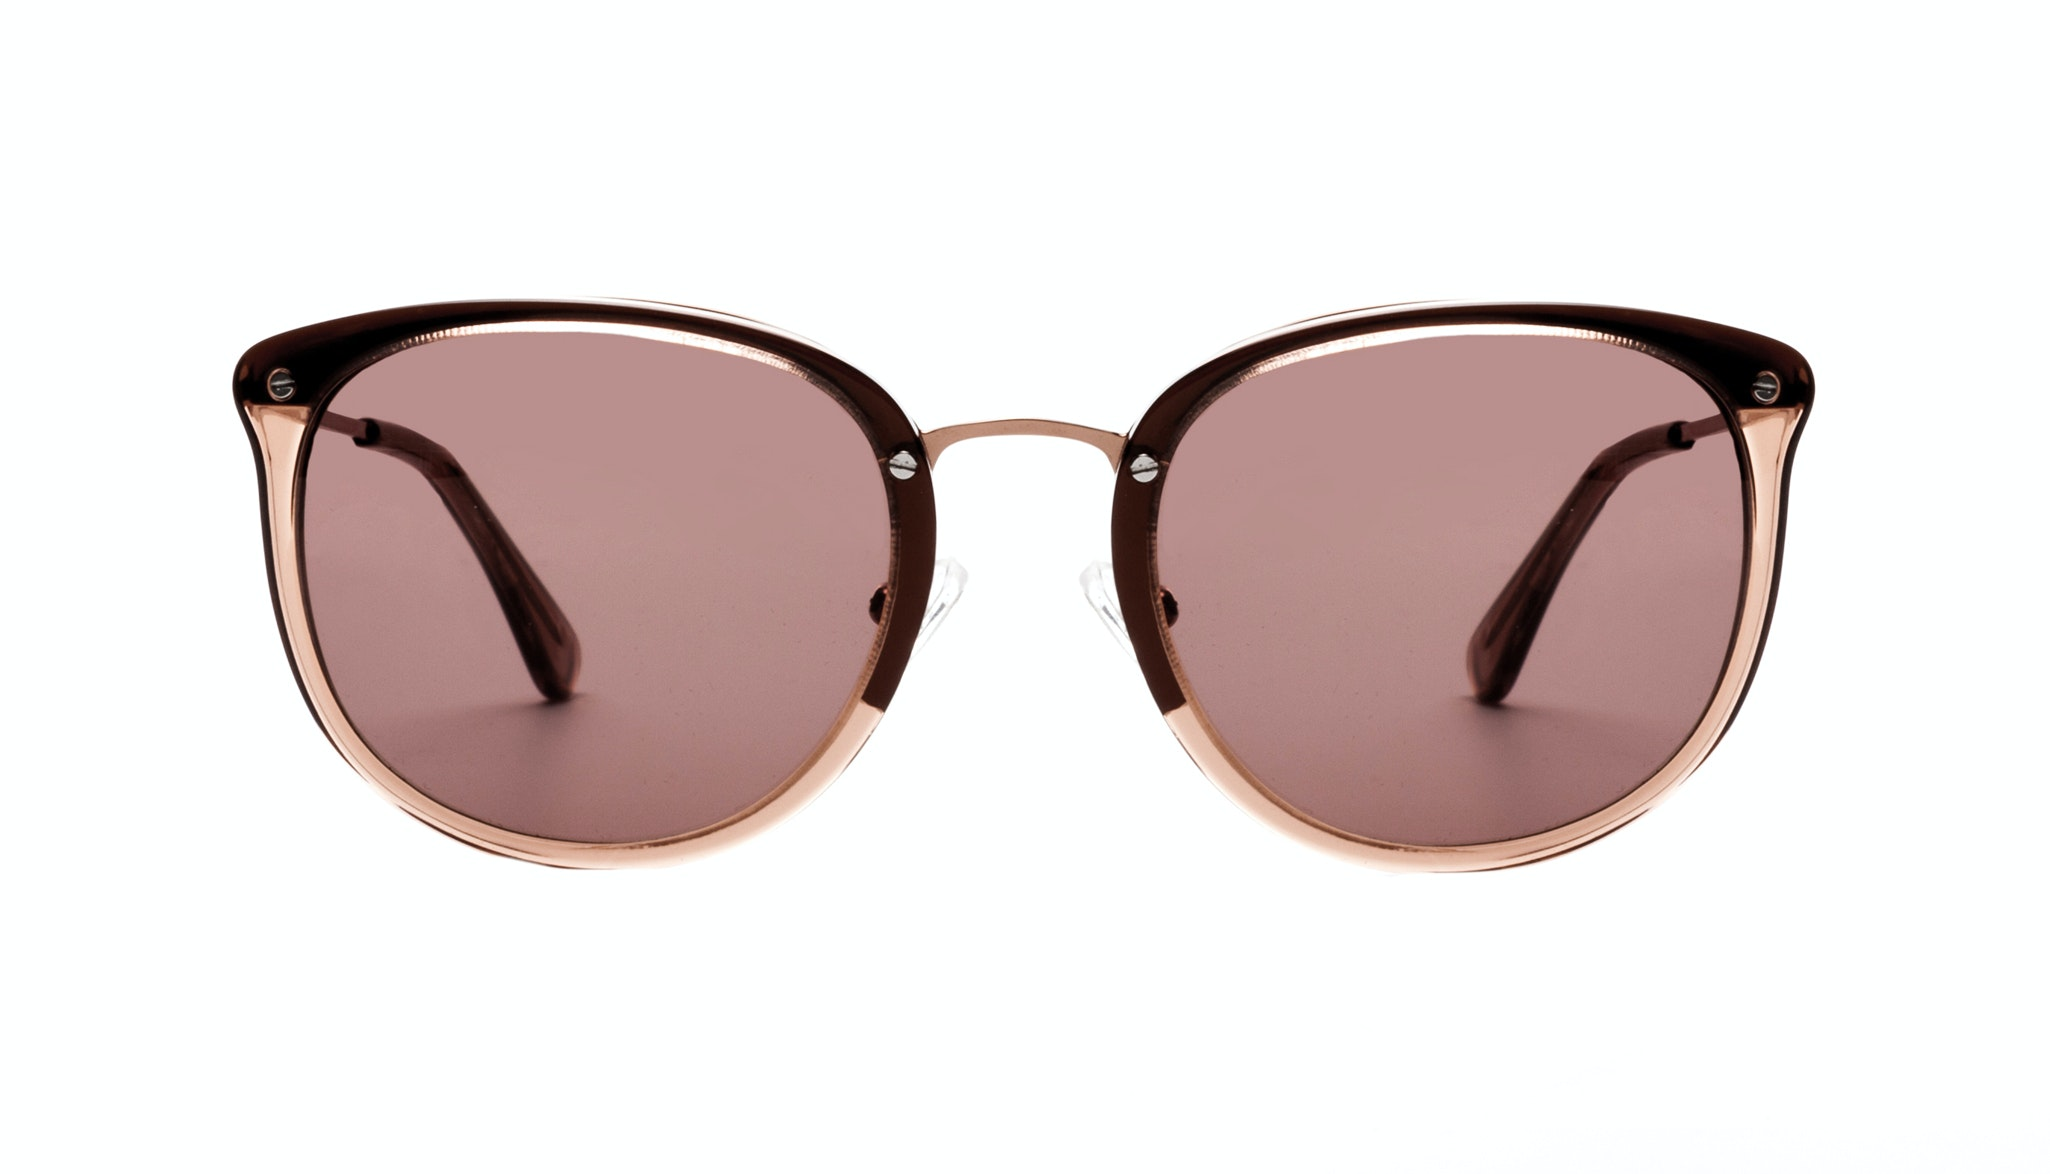 Affordable Fashion Glasses Round Sunglasses Women Amaze Rose Front